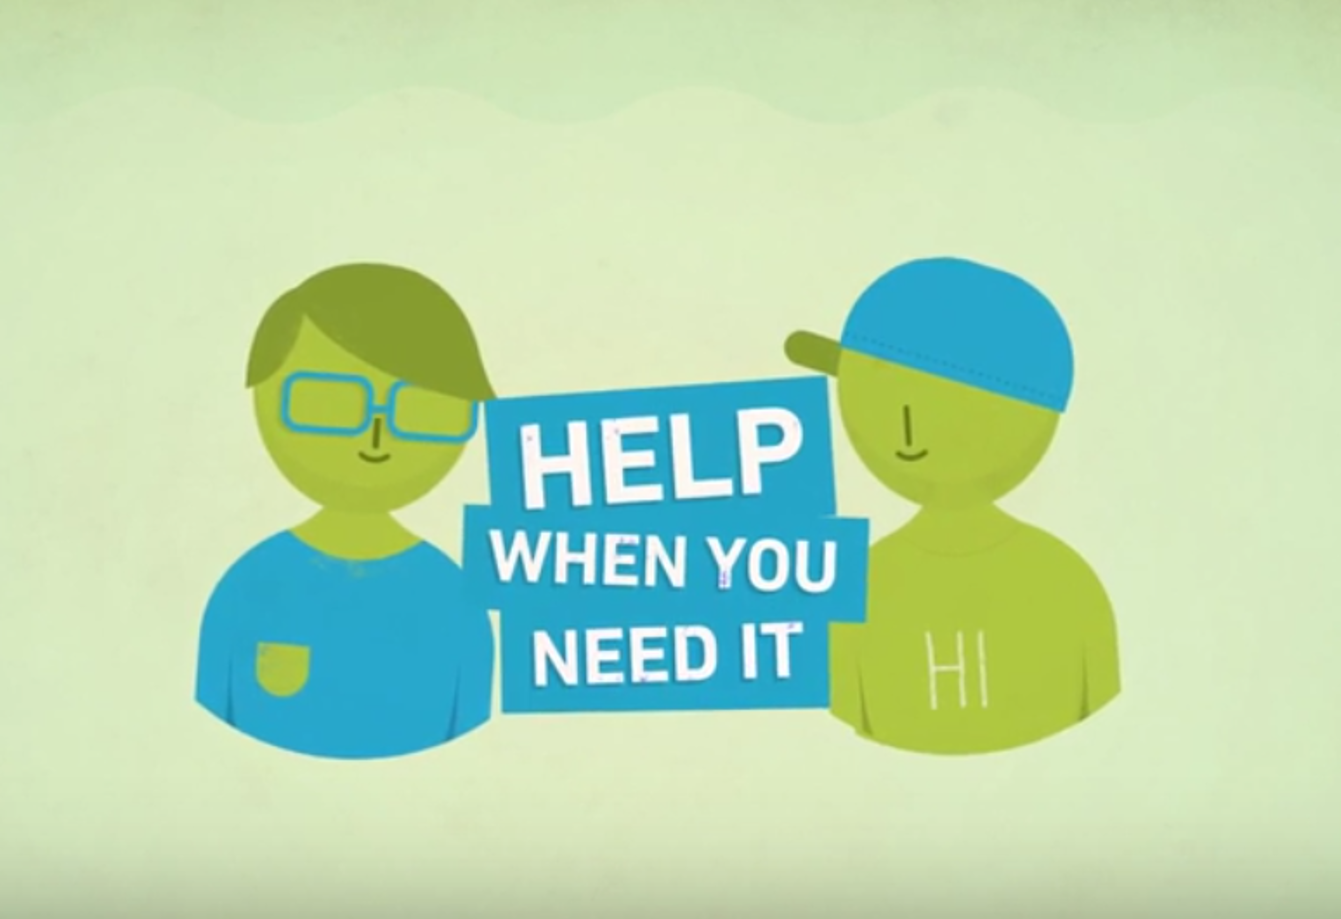 Video for kids in care